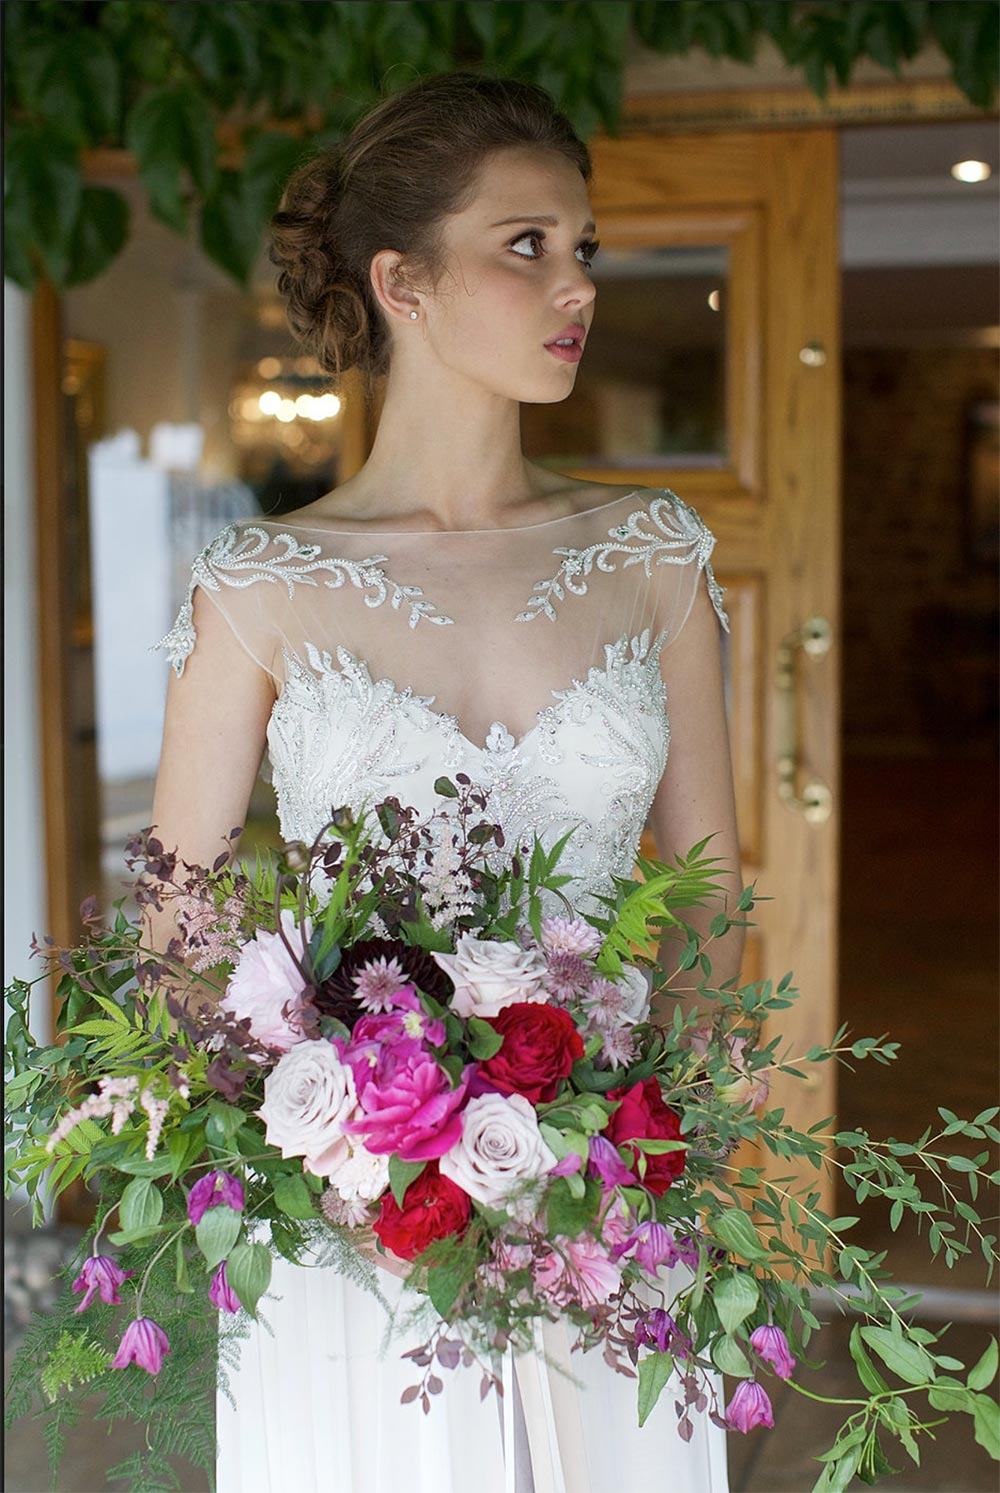 2-wilde-thyme-wedding-florist-bridal-bouquet.jpg